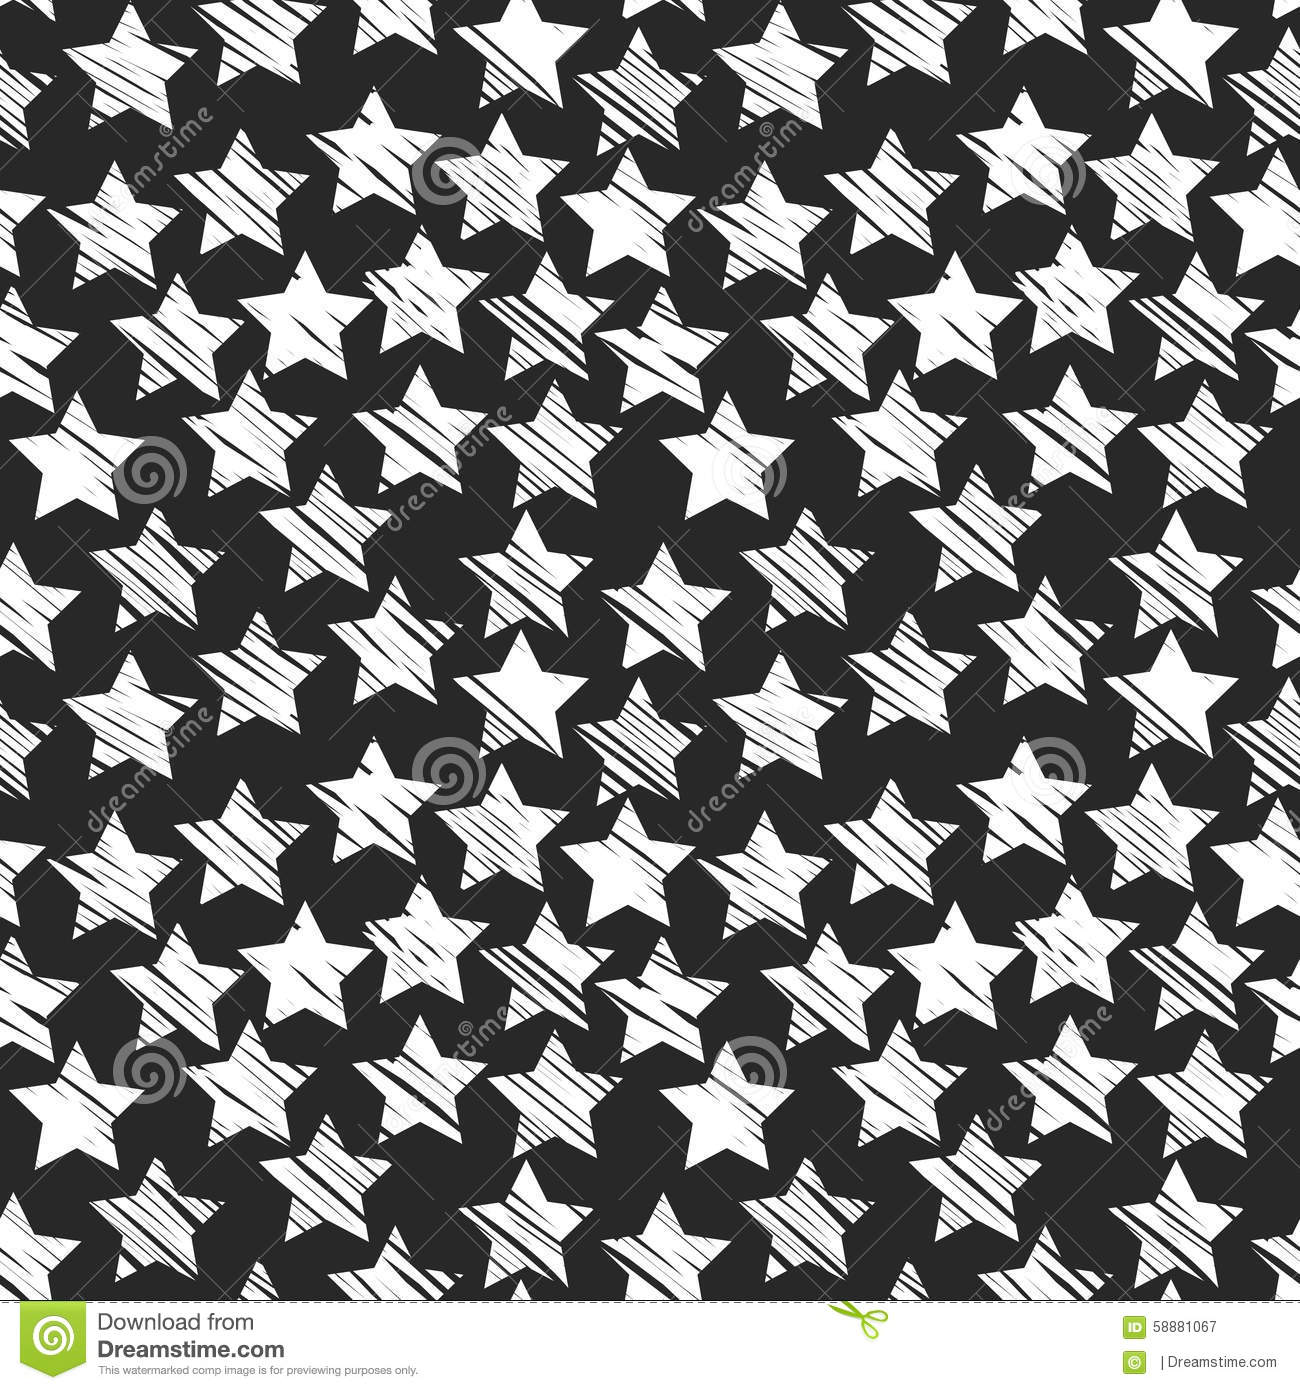 Seamless Star Monochrome Background Black And Stock Vector Illustration Of Plain Abstract 58881067